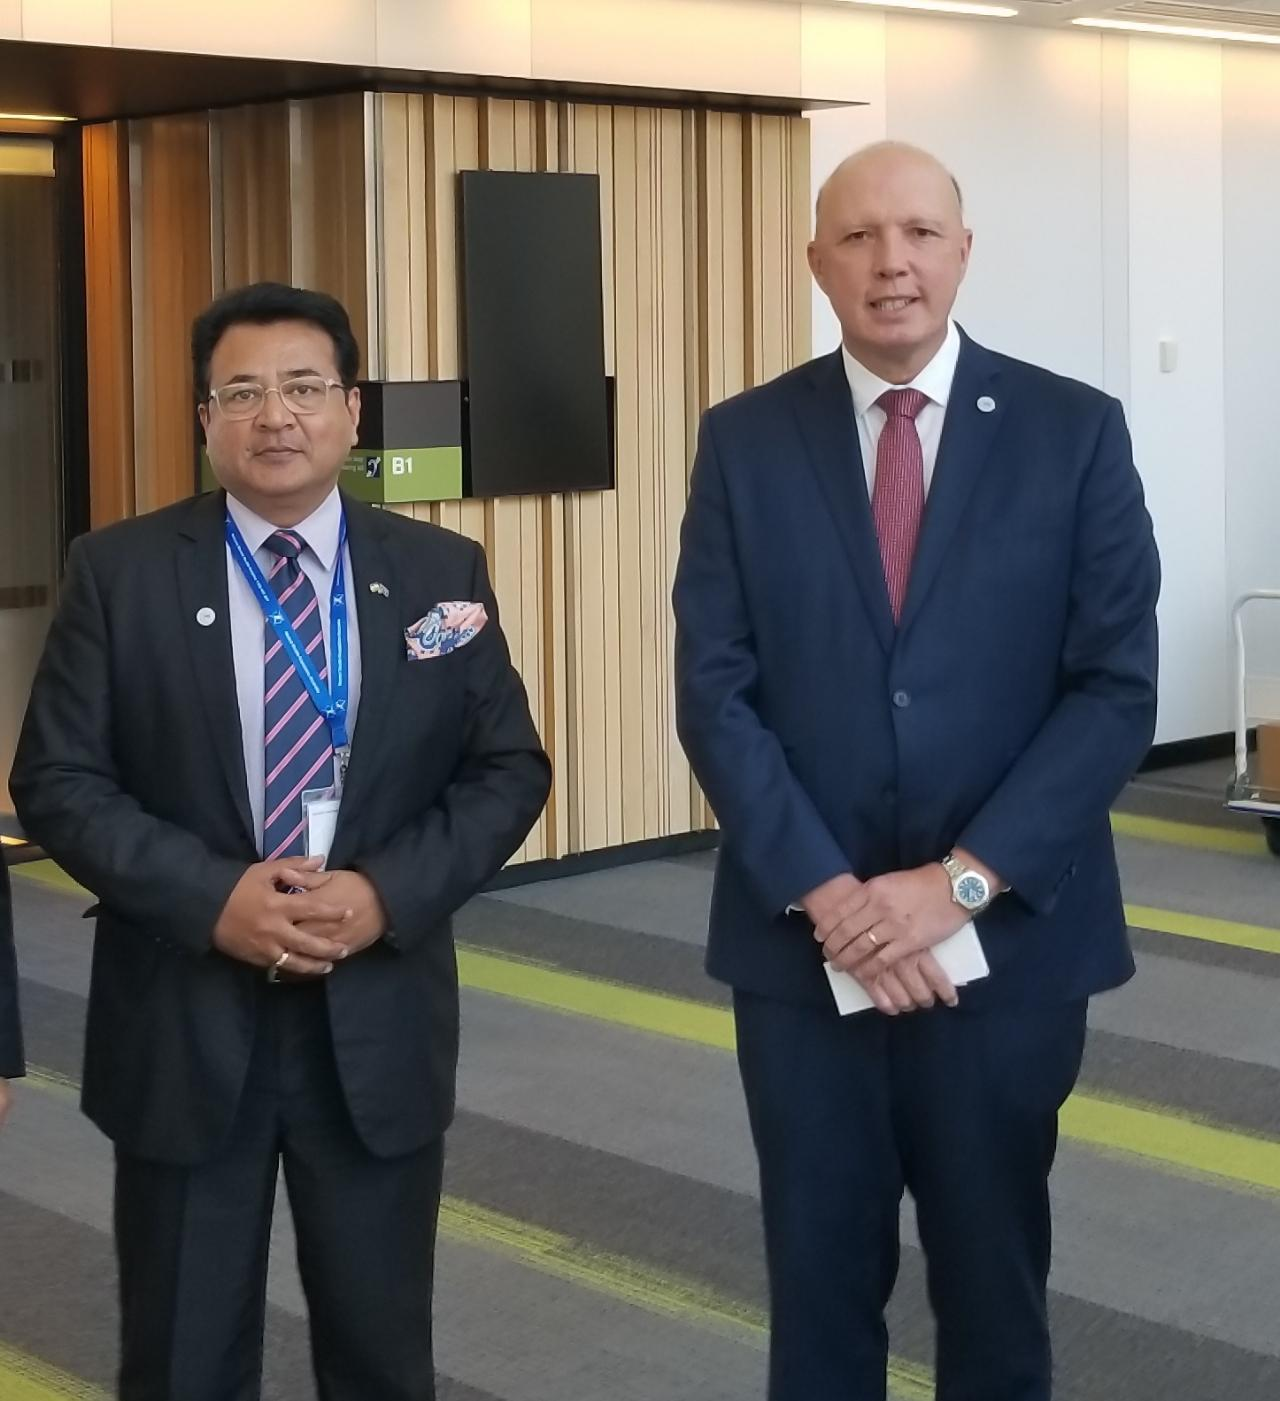 Interaction with Hon Peter dutton at a mental health symposium